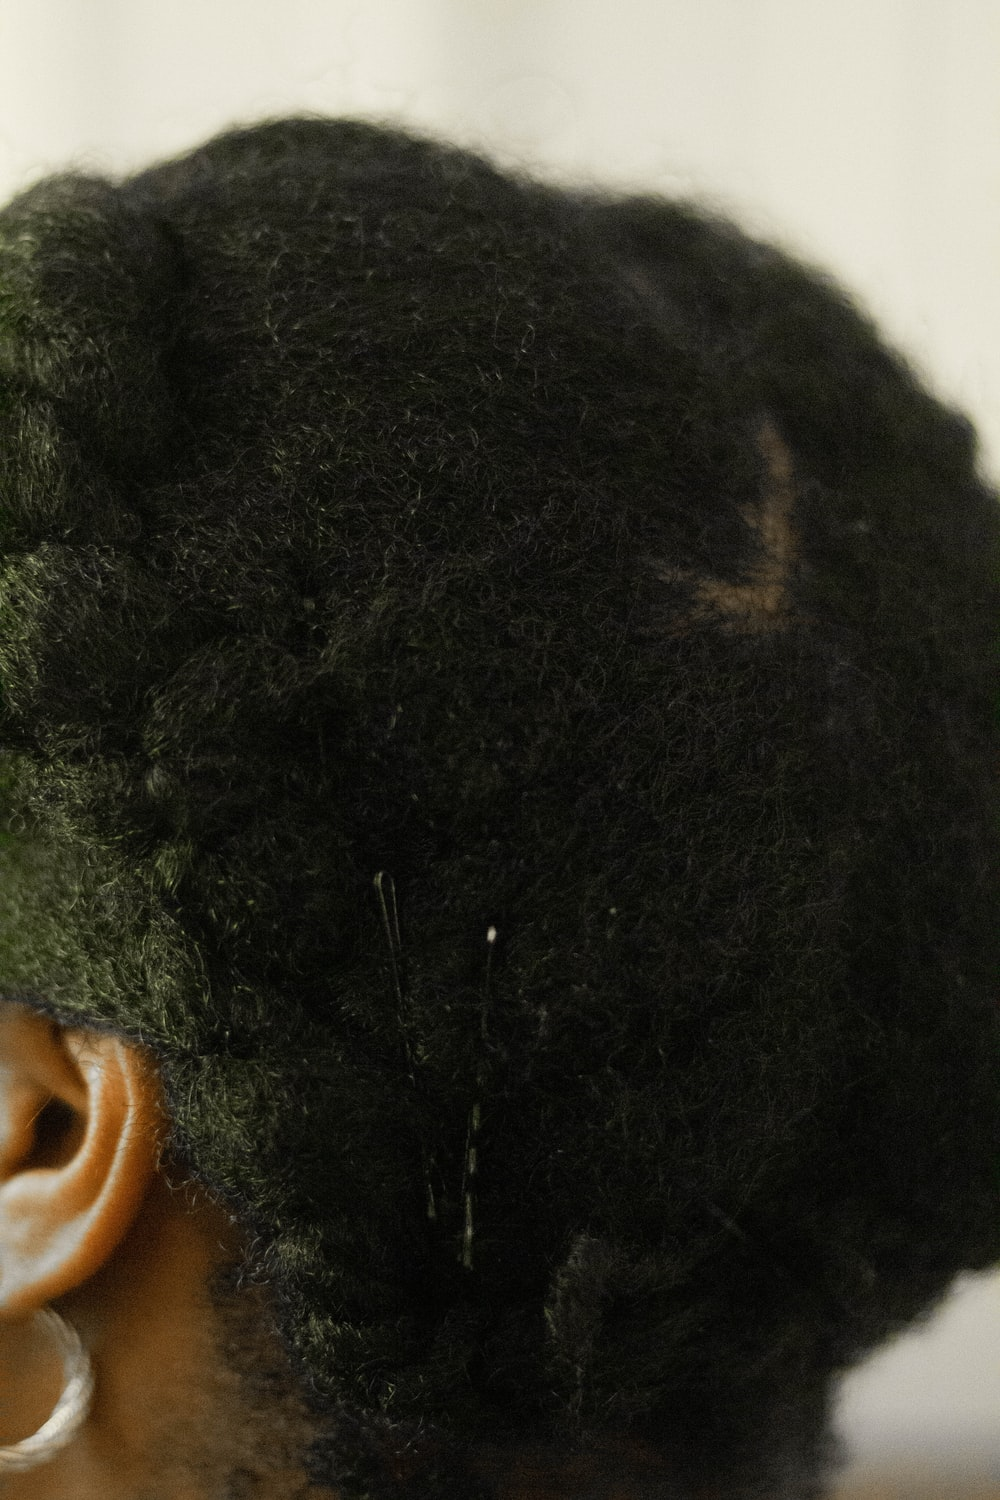 persons black curly hair